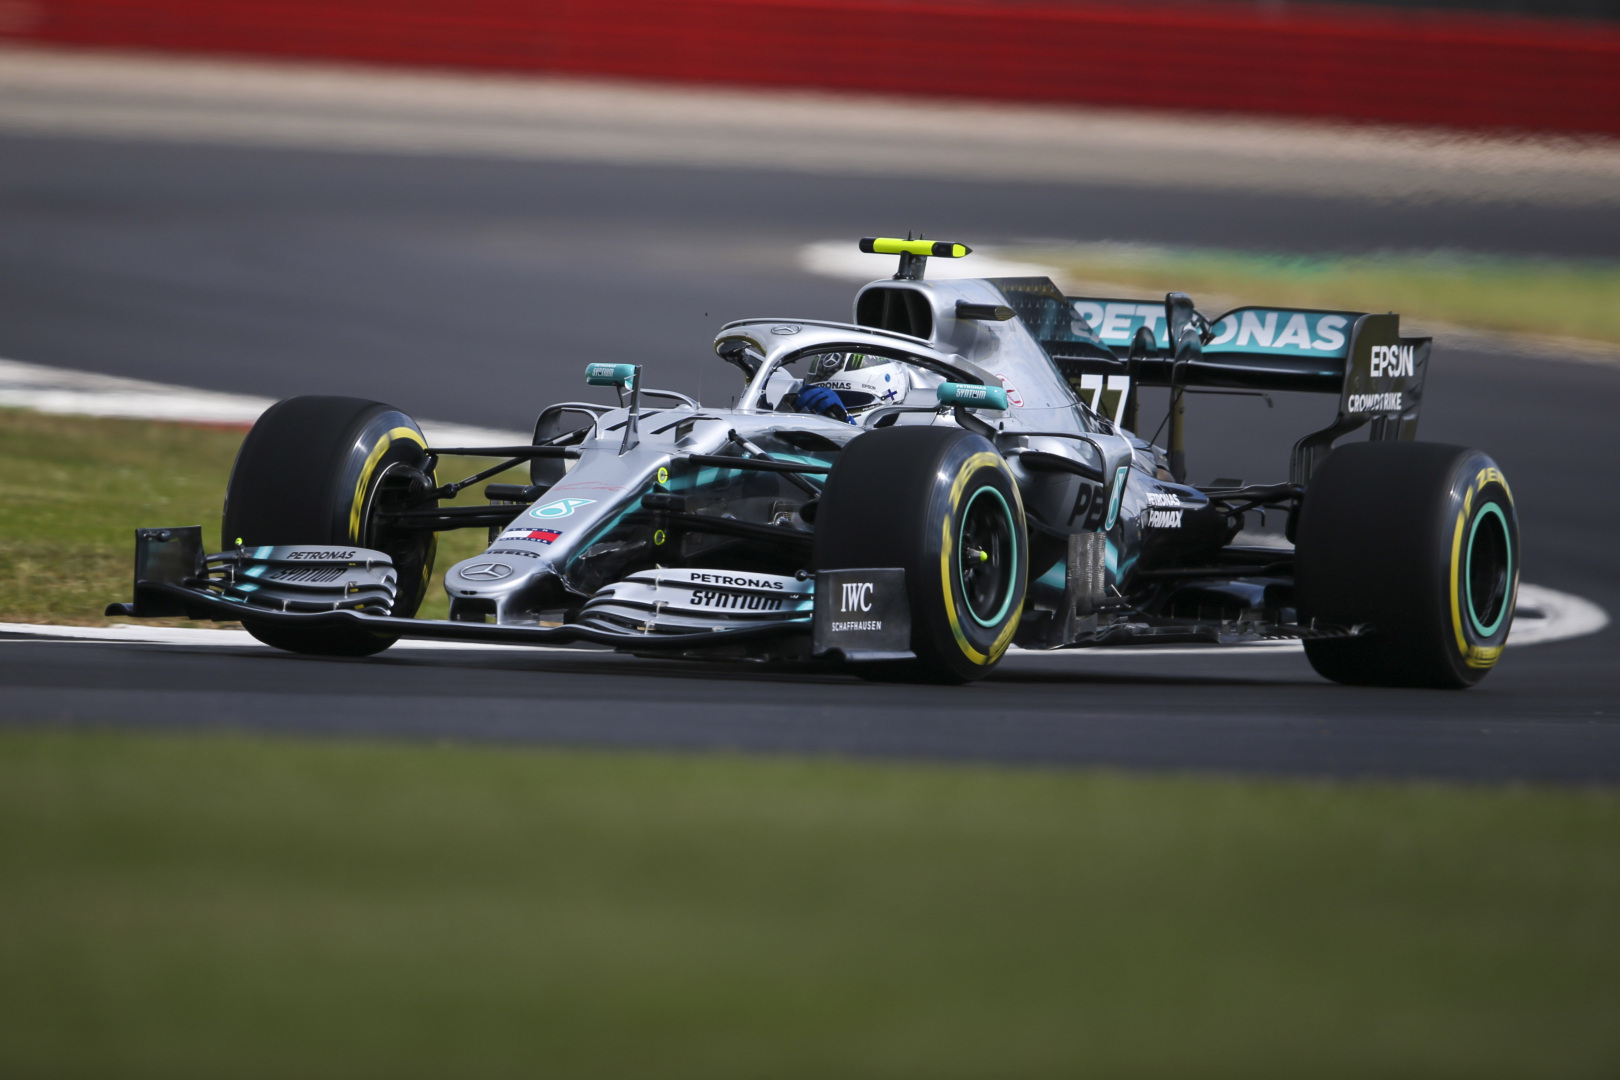 Bottas regrets discounting one-stop strategy - Speedcafe